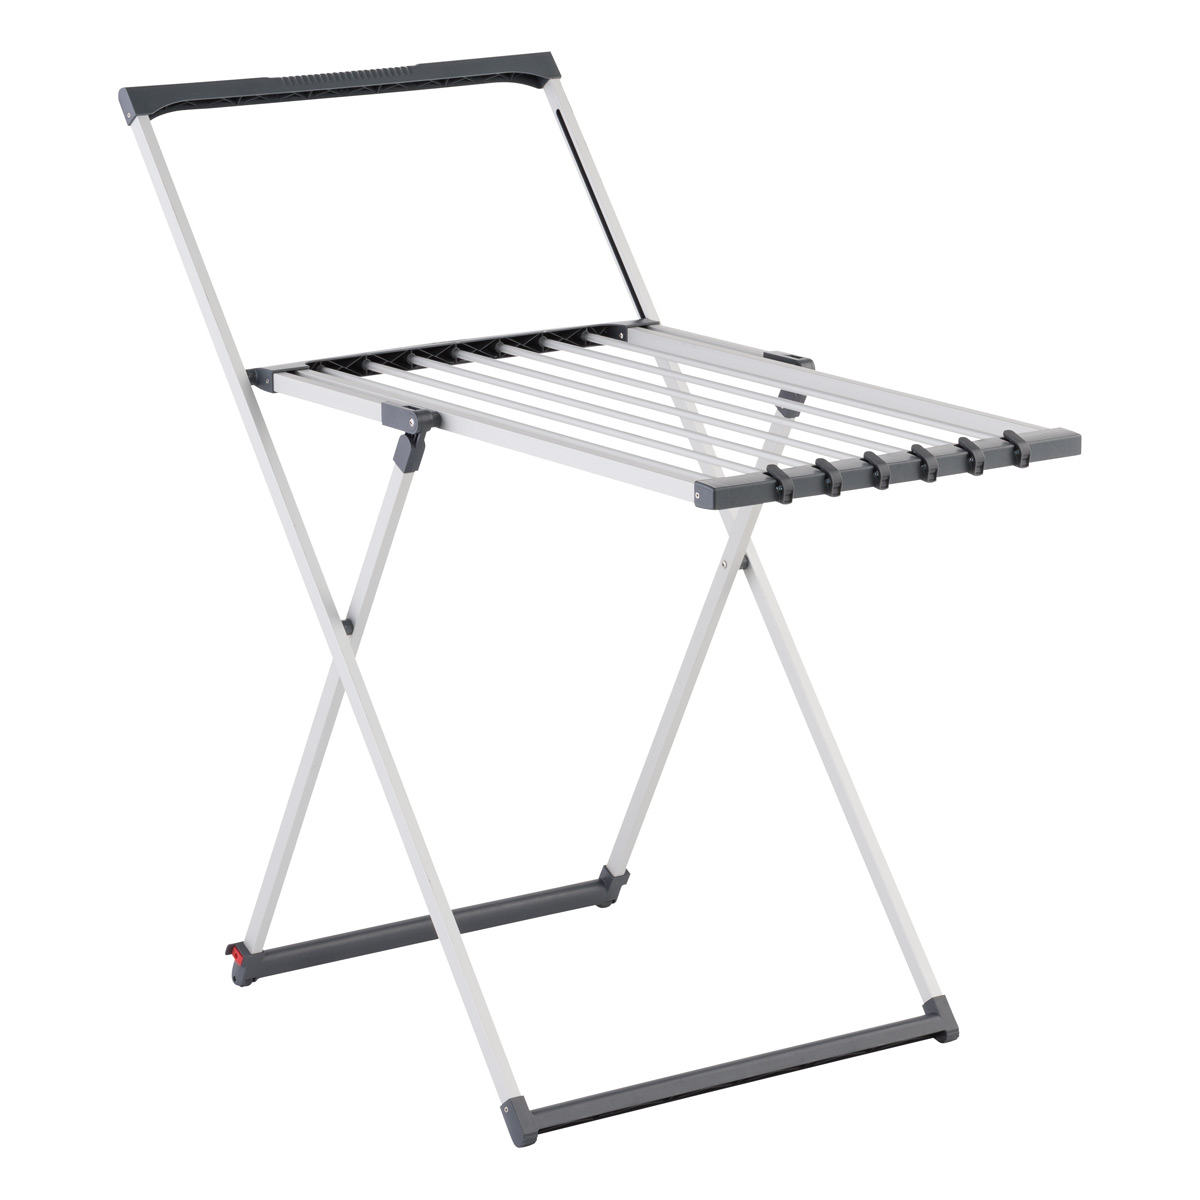 Laundry Stand